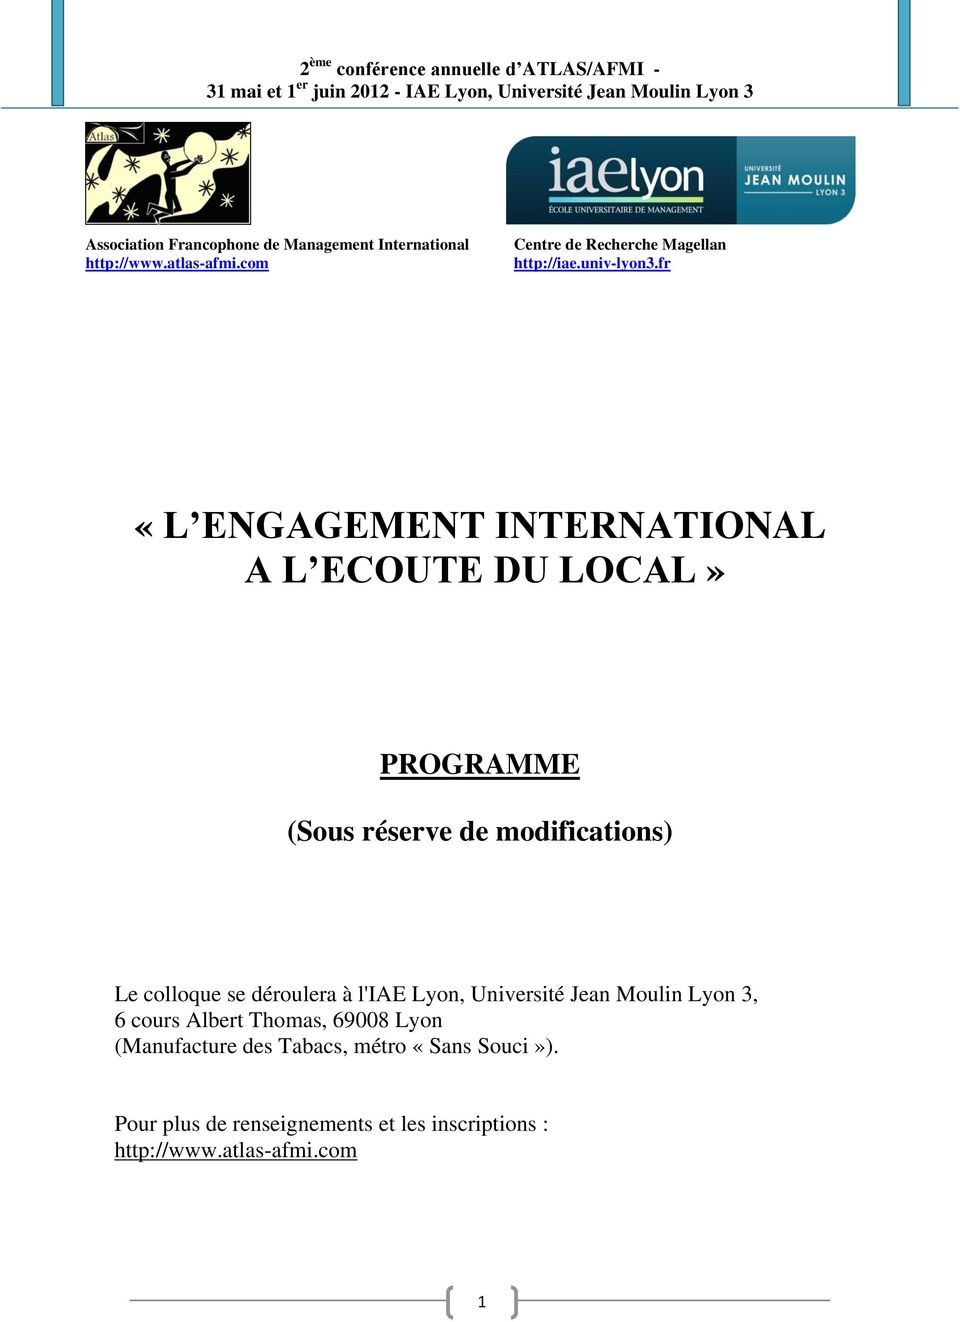 fr «L ENGAGEMENT INTERNATIONAL A L ECOUTE DU LOCAL» PROGRAMME (Sous réserve de modifications) Le colloque se